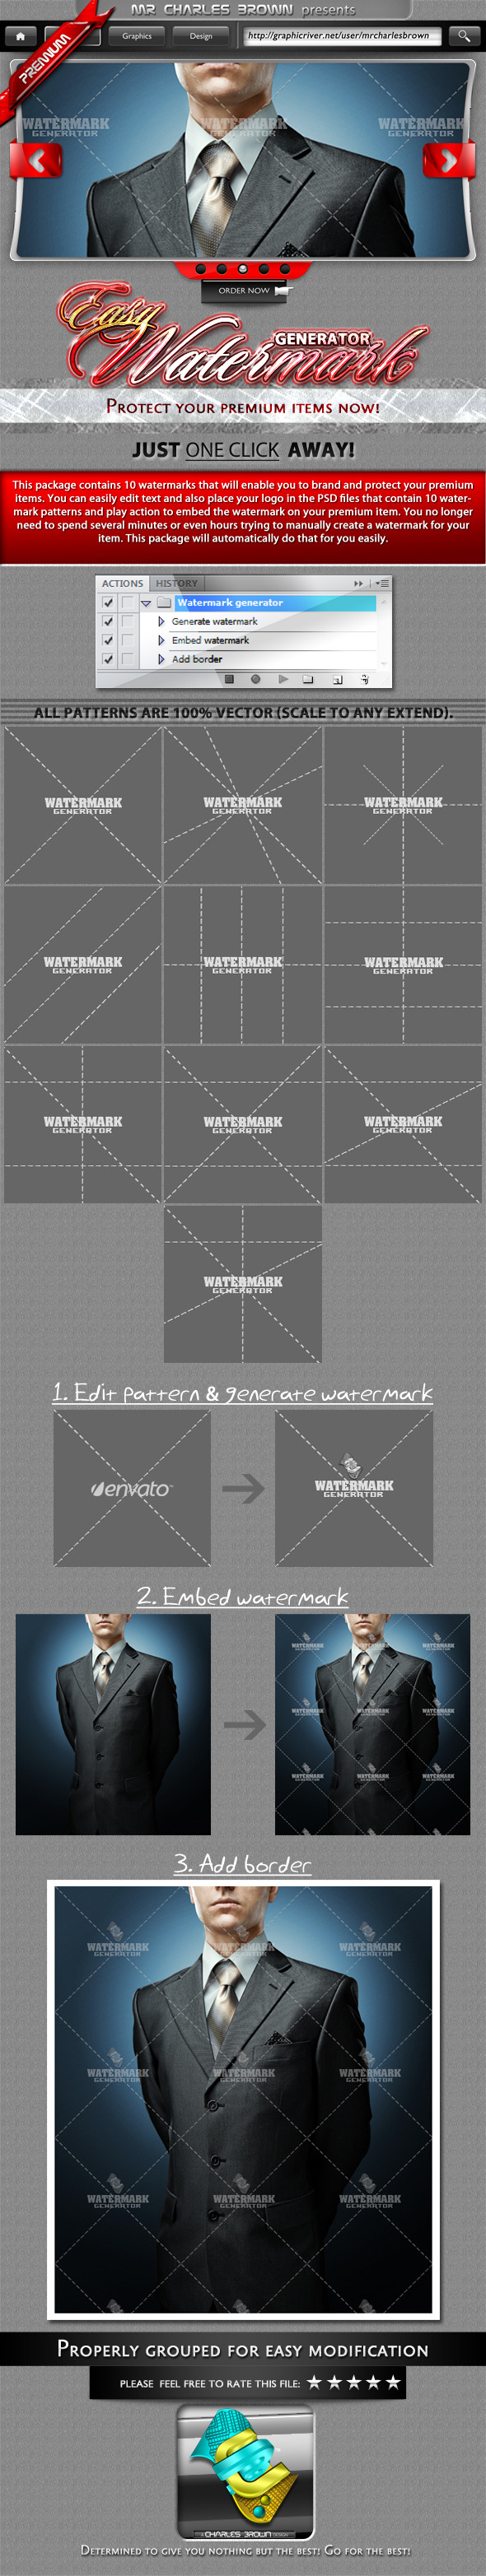 Easy Watermark Generator - Photoshop Add-ons